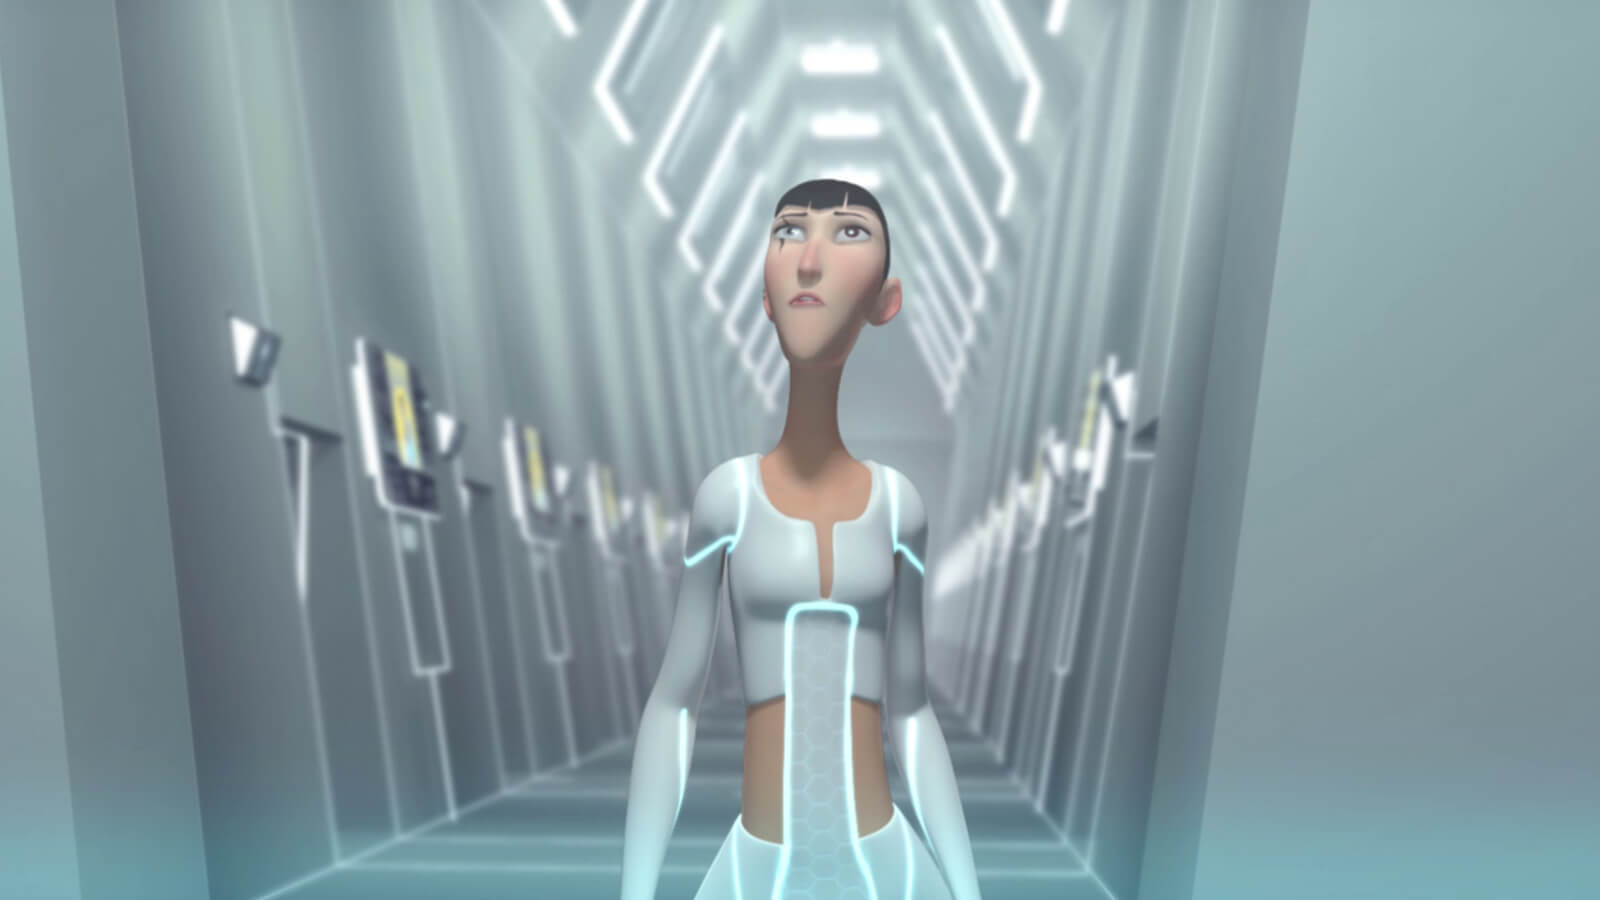 A tall, thin woman with a scar over her eye with futuristic white clothing walks down a brightly lit white corridor